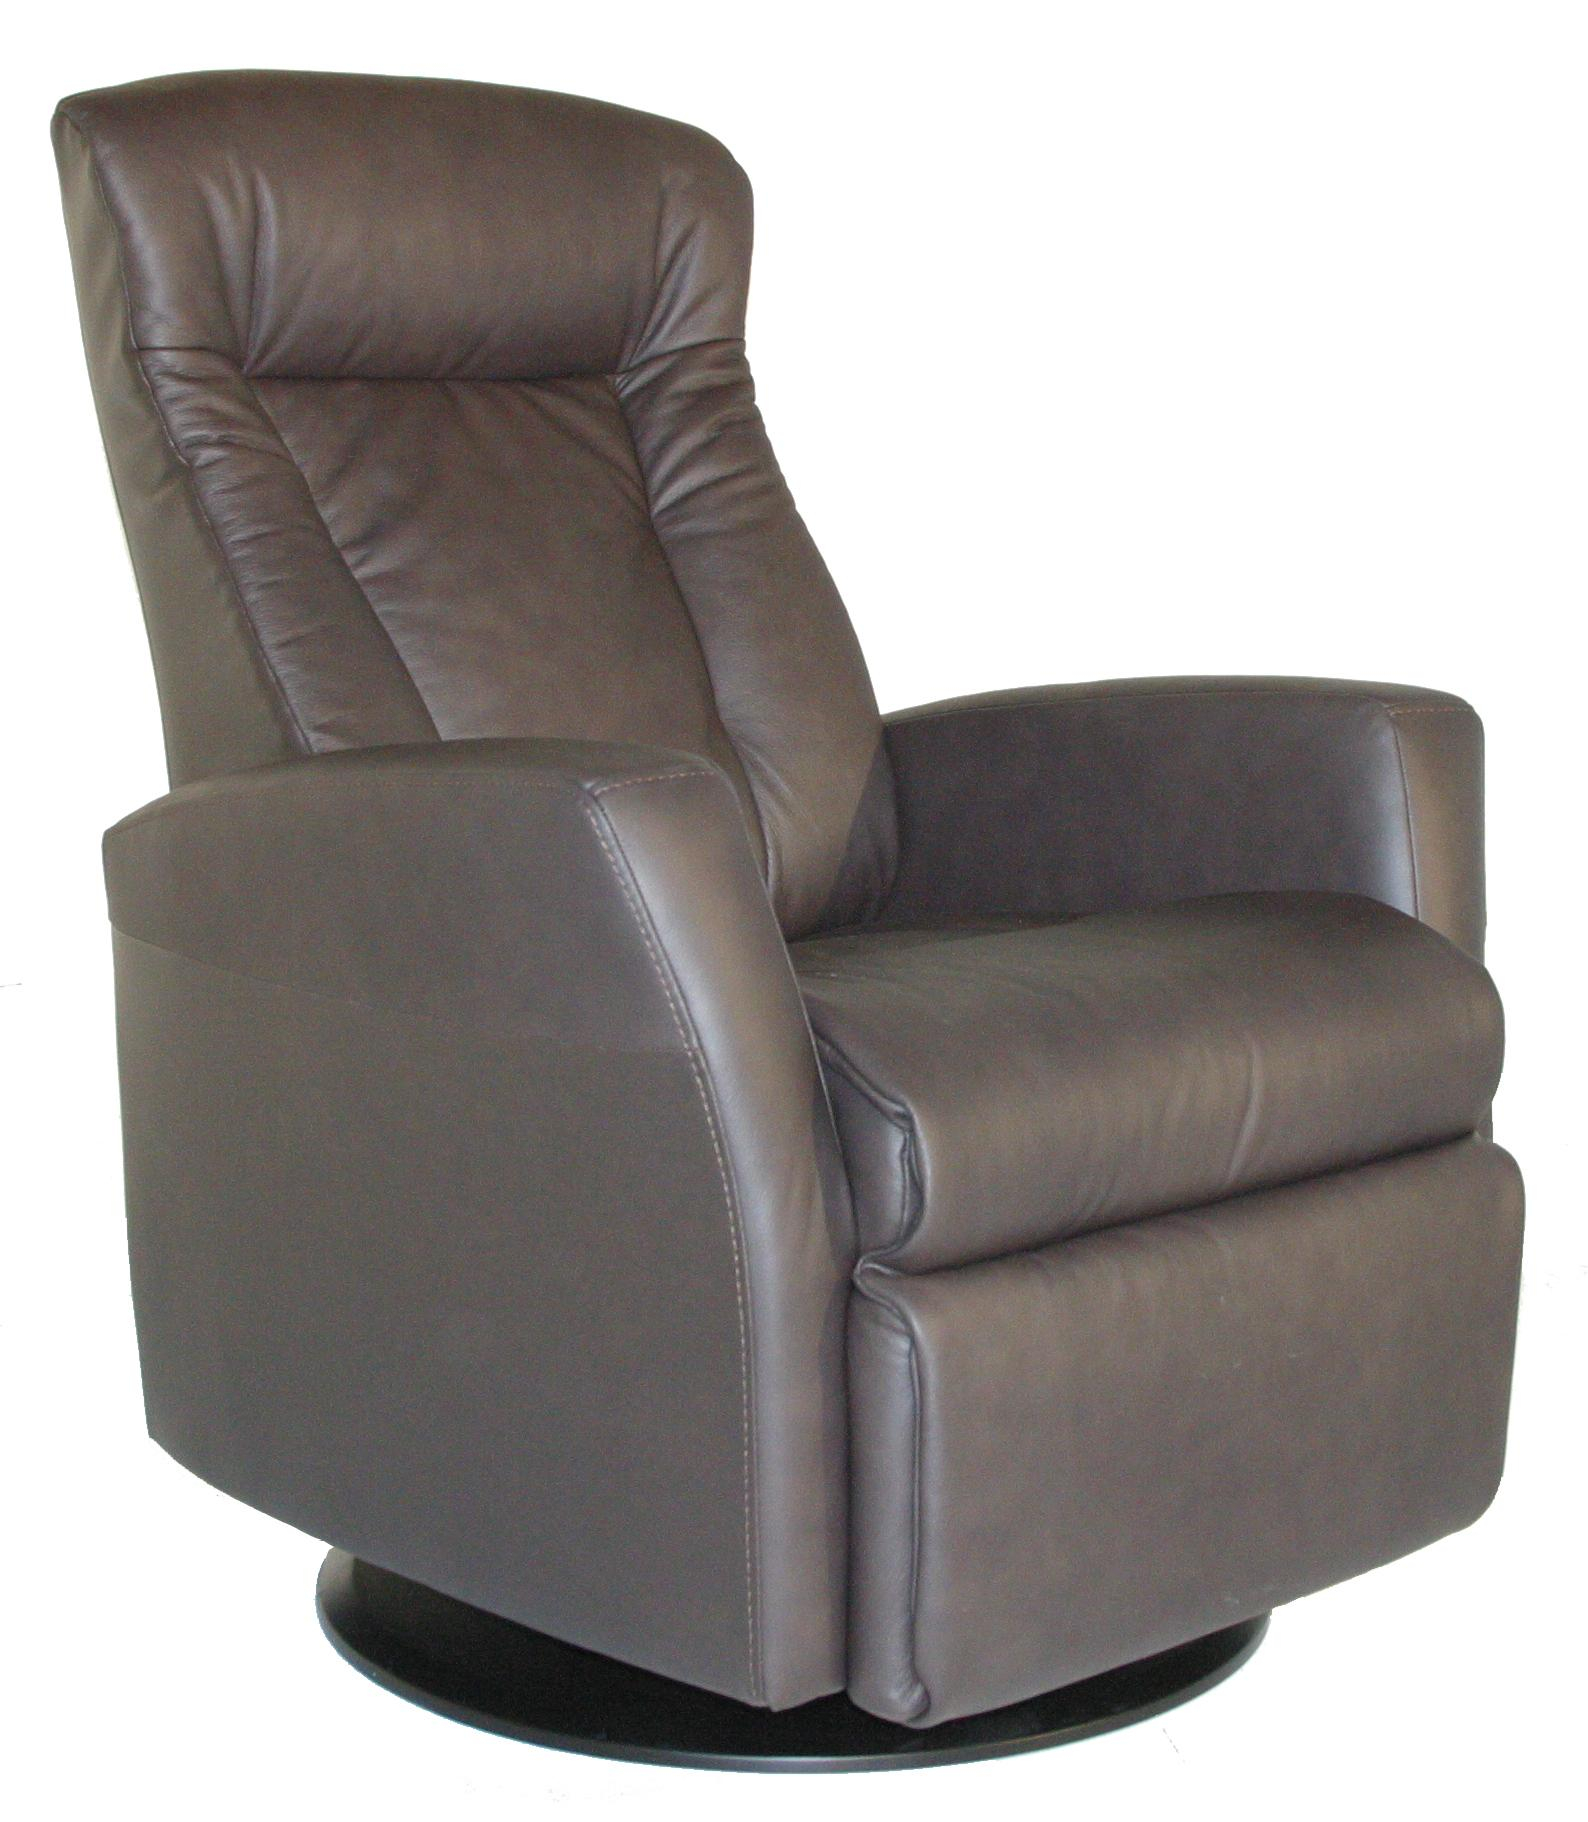 Vendor 508 Recliners Recliner Relaxer - Item Number: RG201 Prince